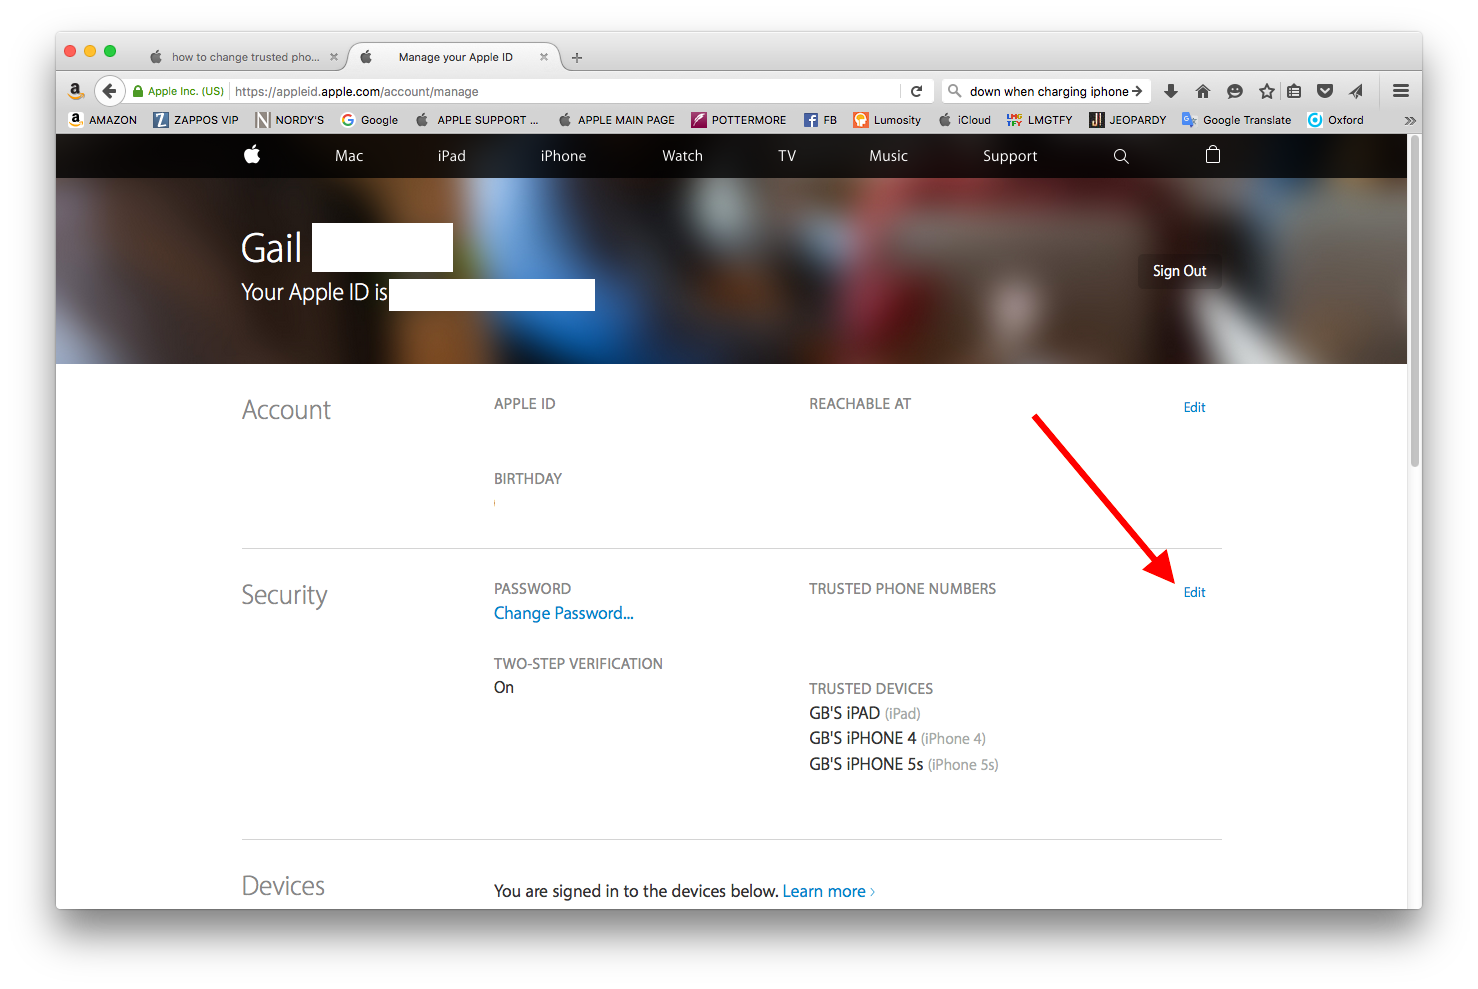 how to change trusted phone number - Apple Community